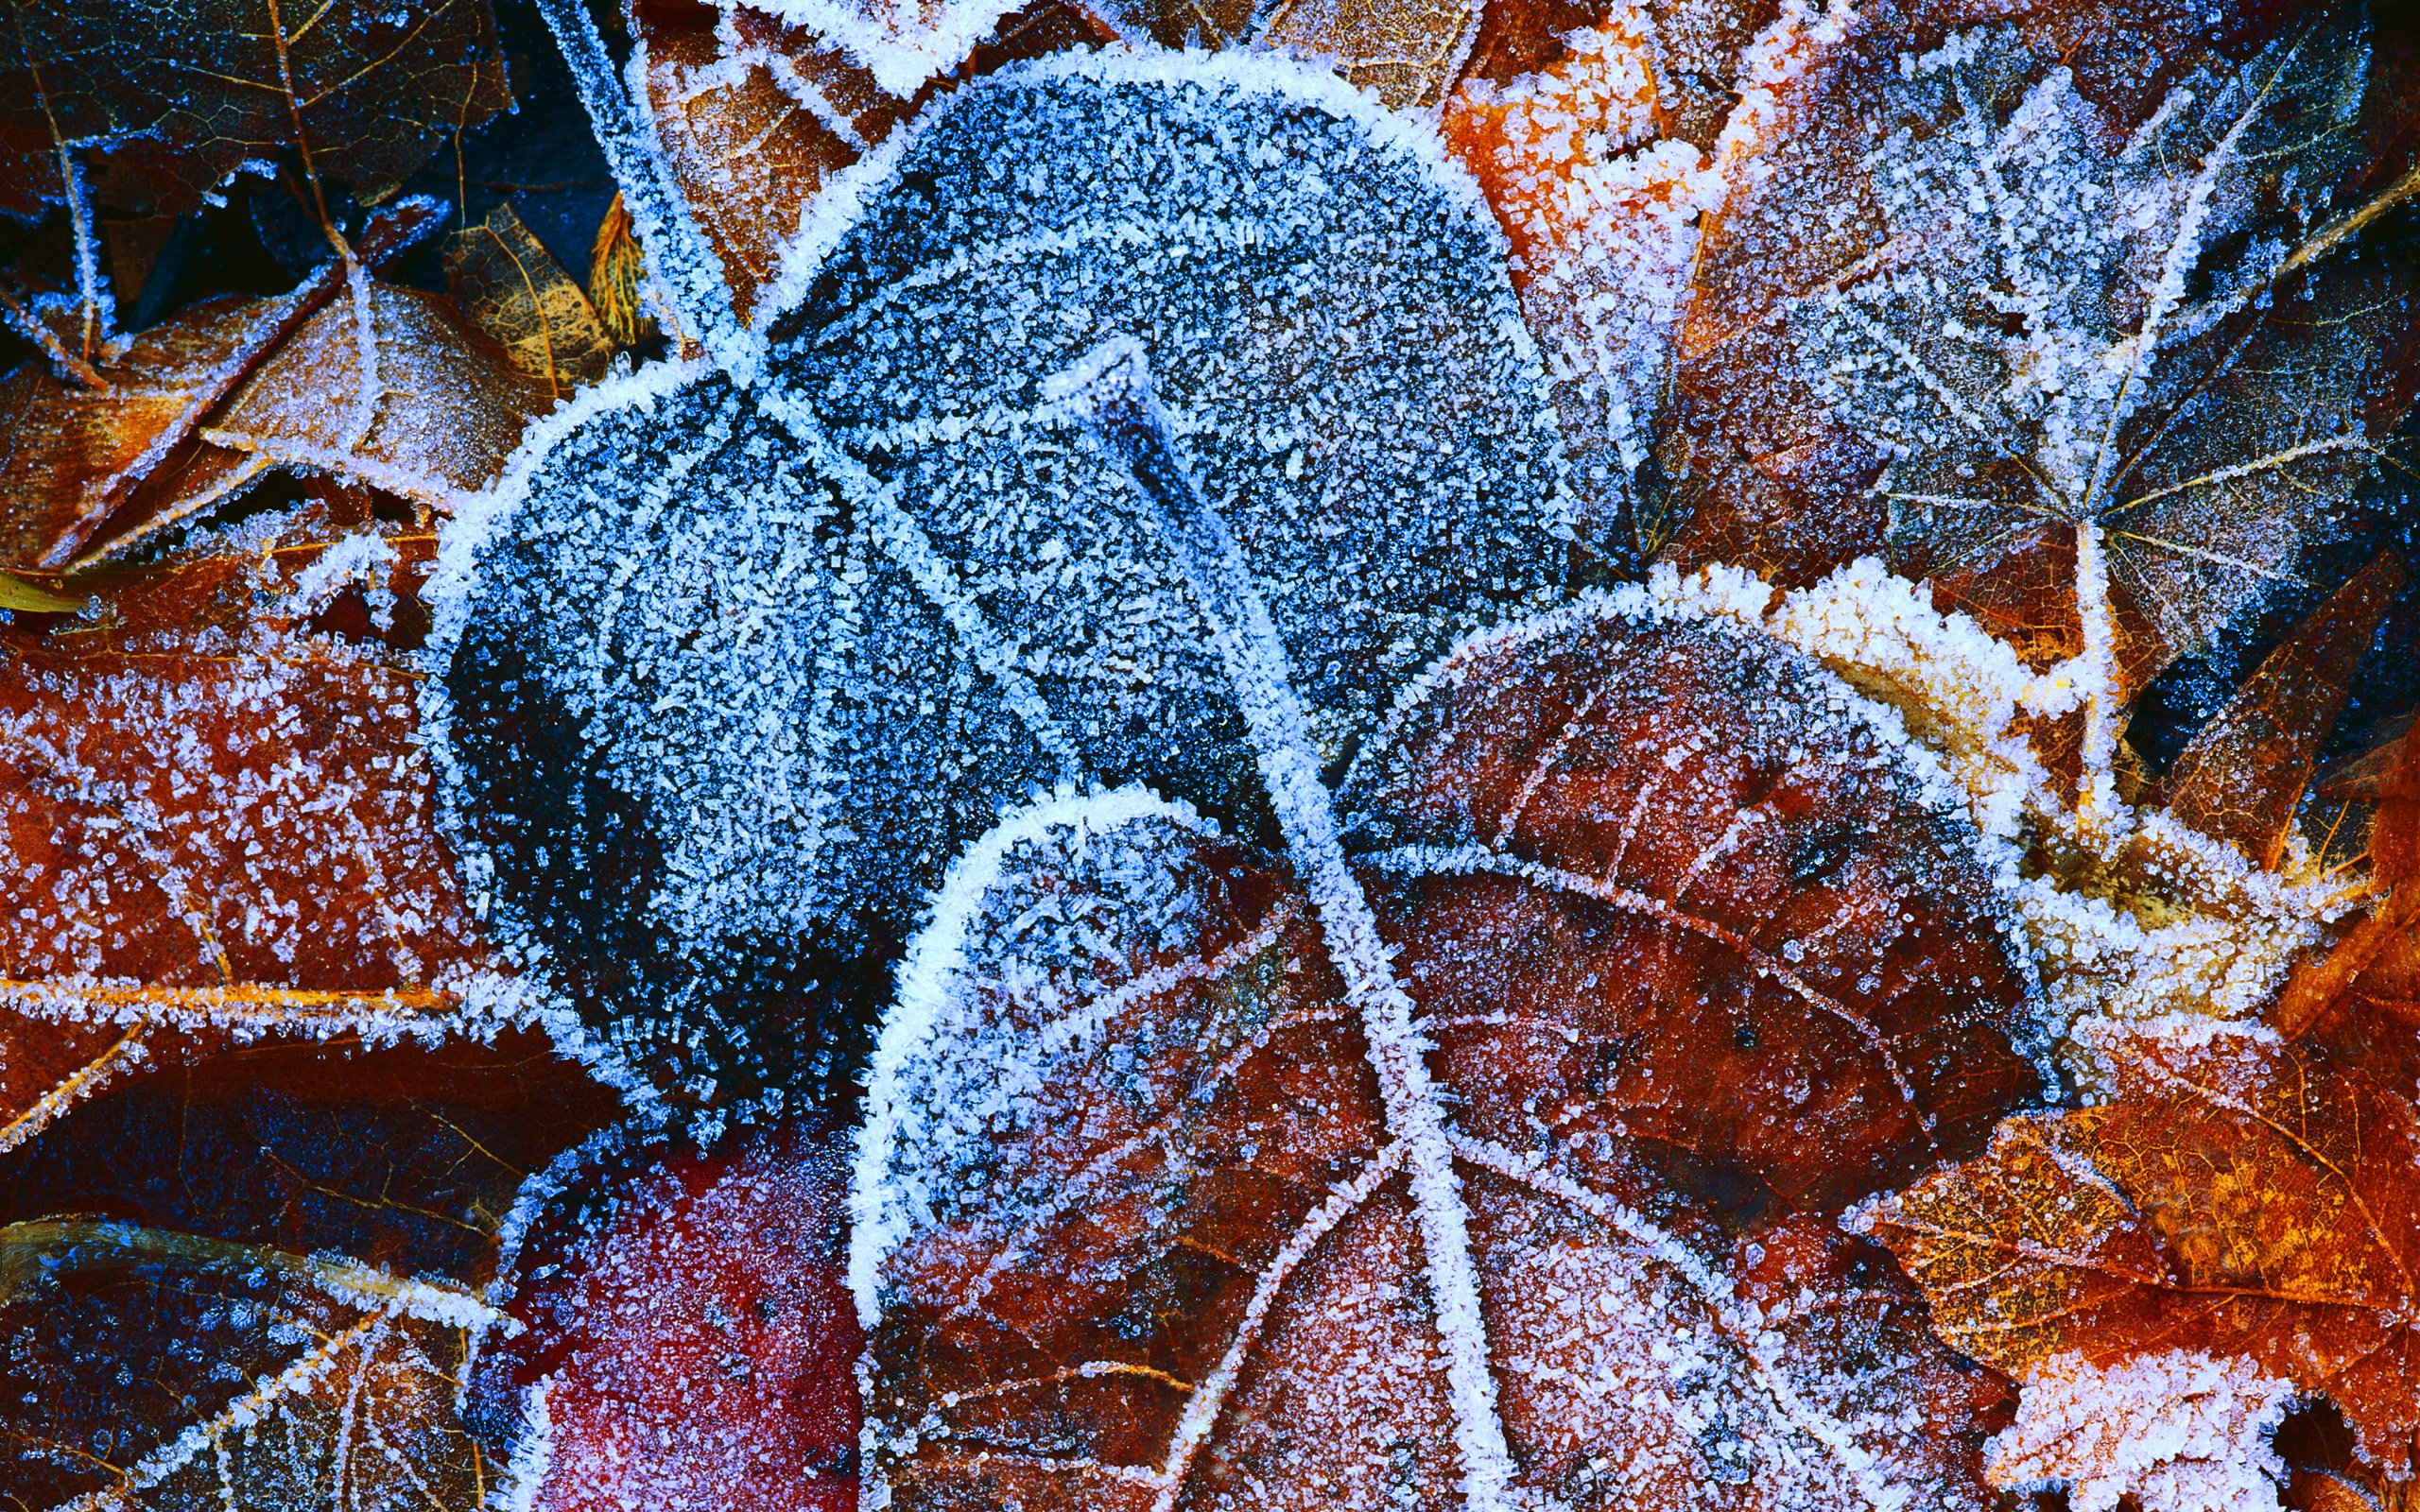 frosty autumn leaves wallpapers hd wallpapers frosty autumn leaves 2560x1600